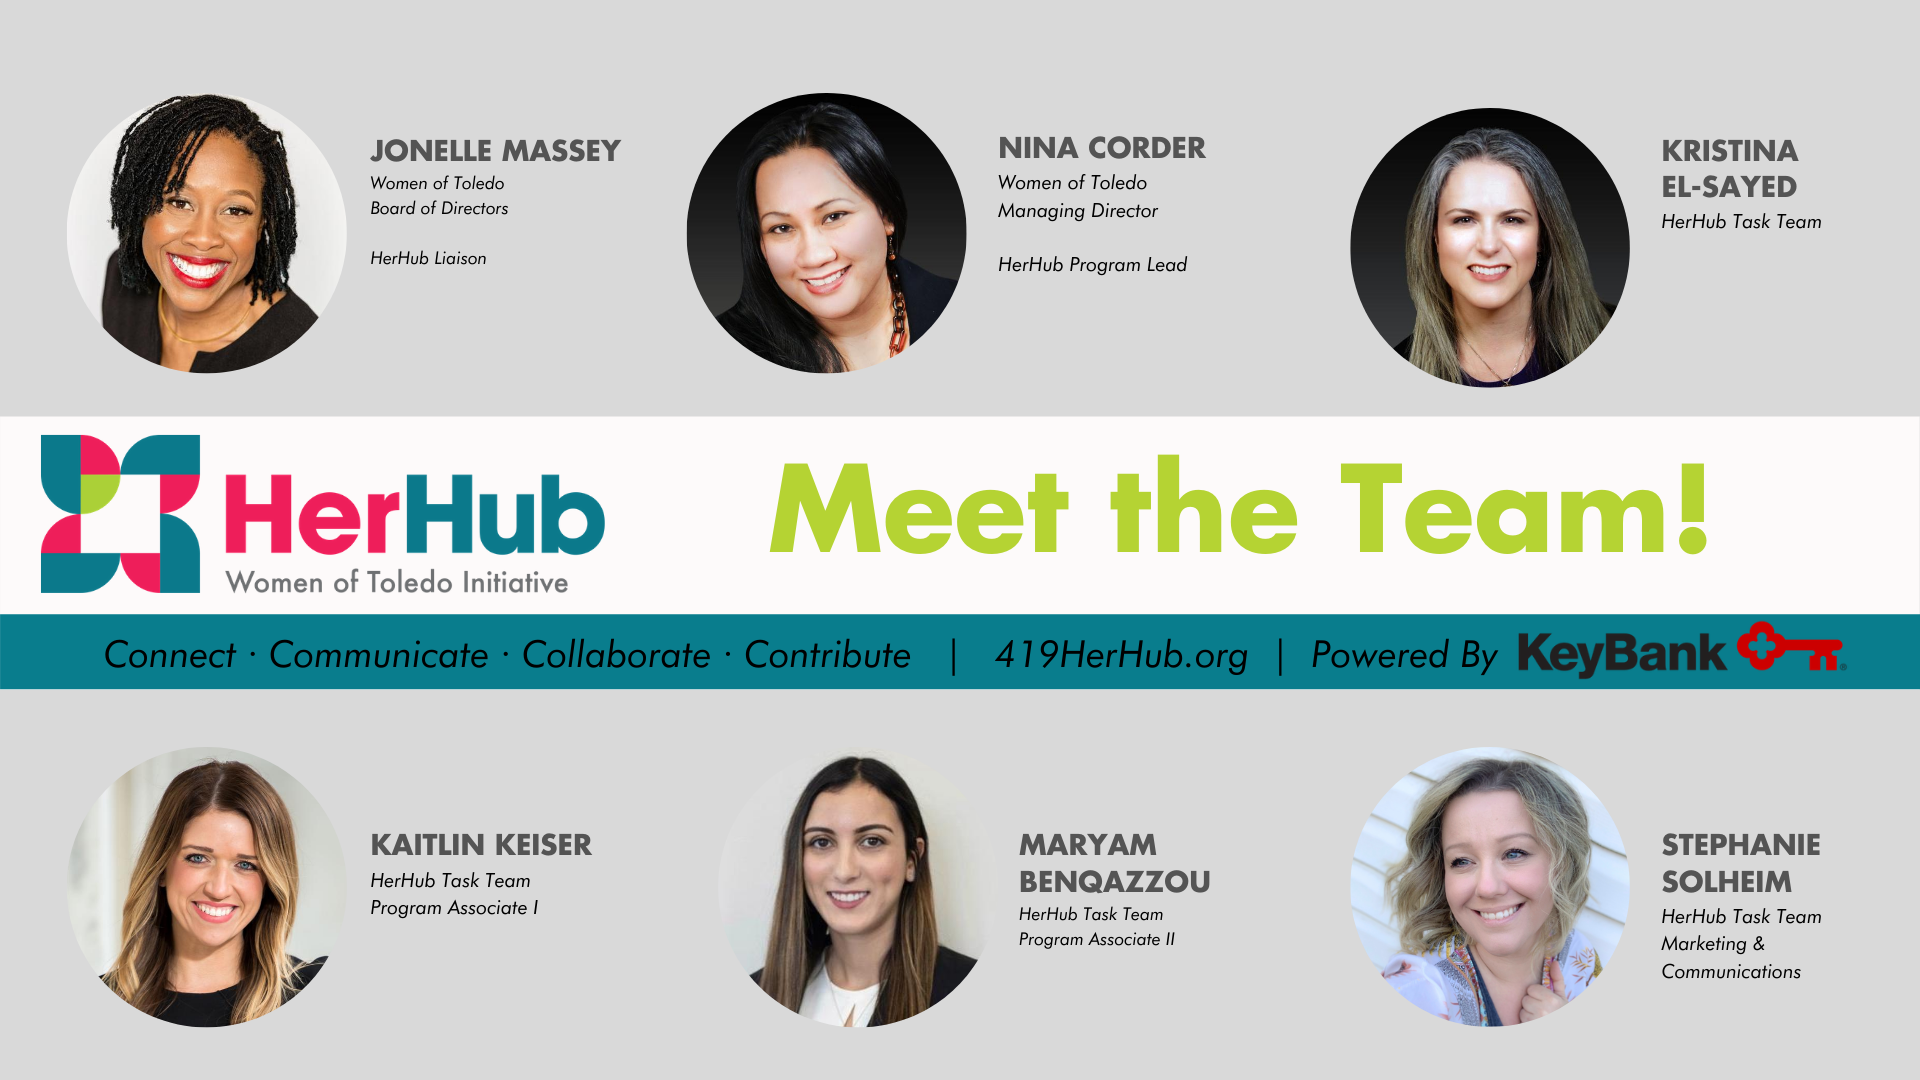 HerHub Team photo